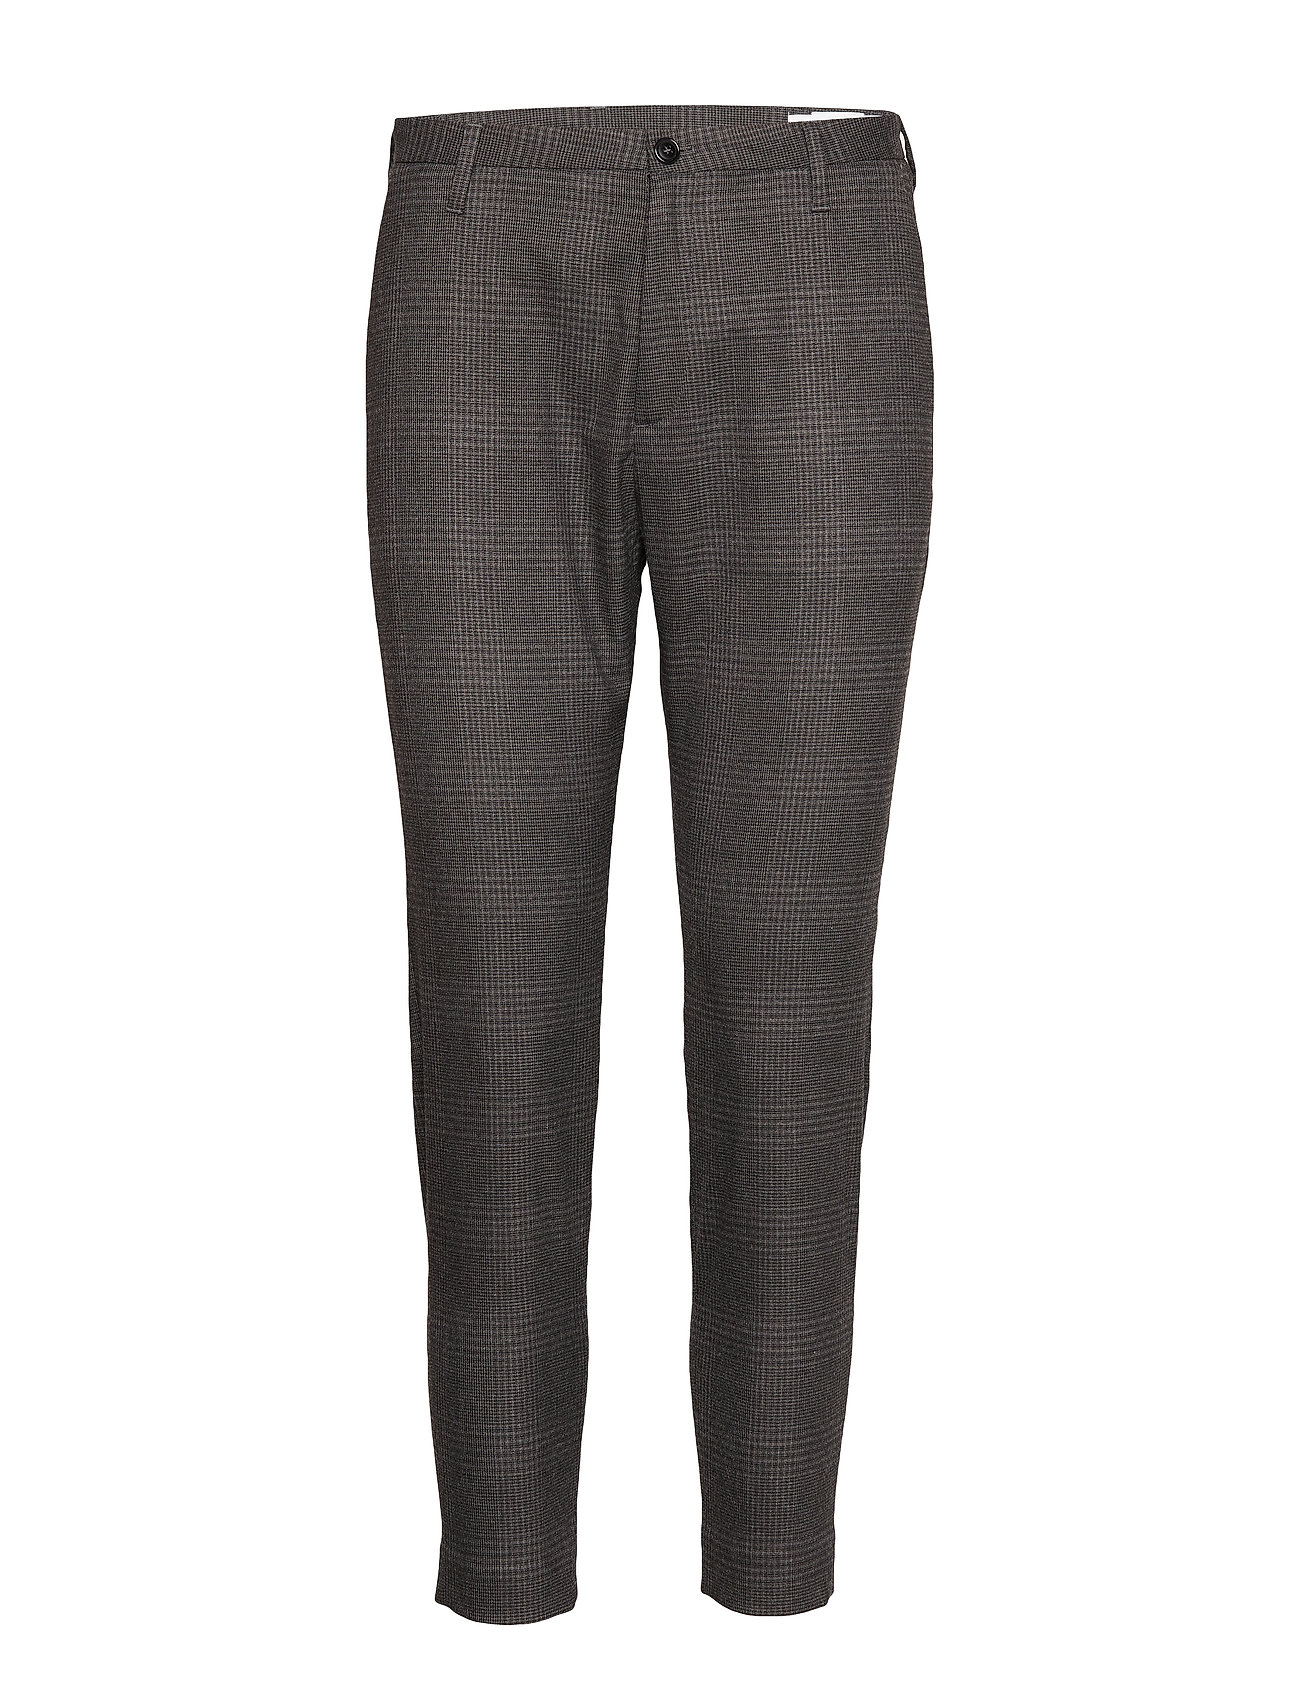 Hope Krissy Trousers - CONCRETE CHECK